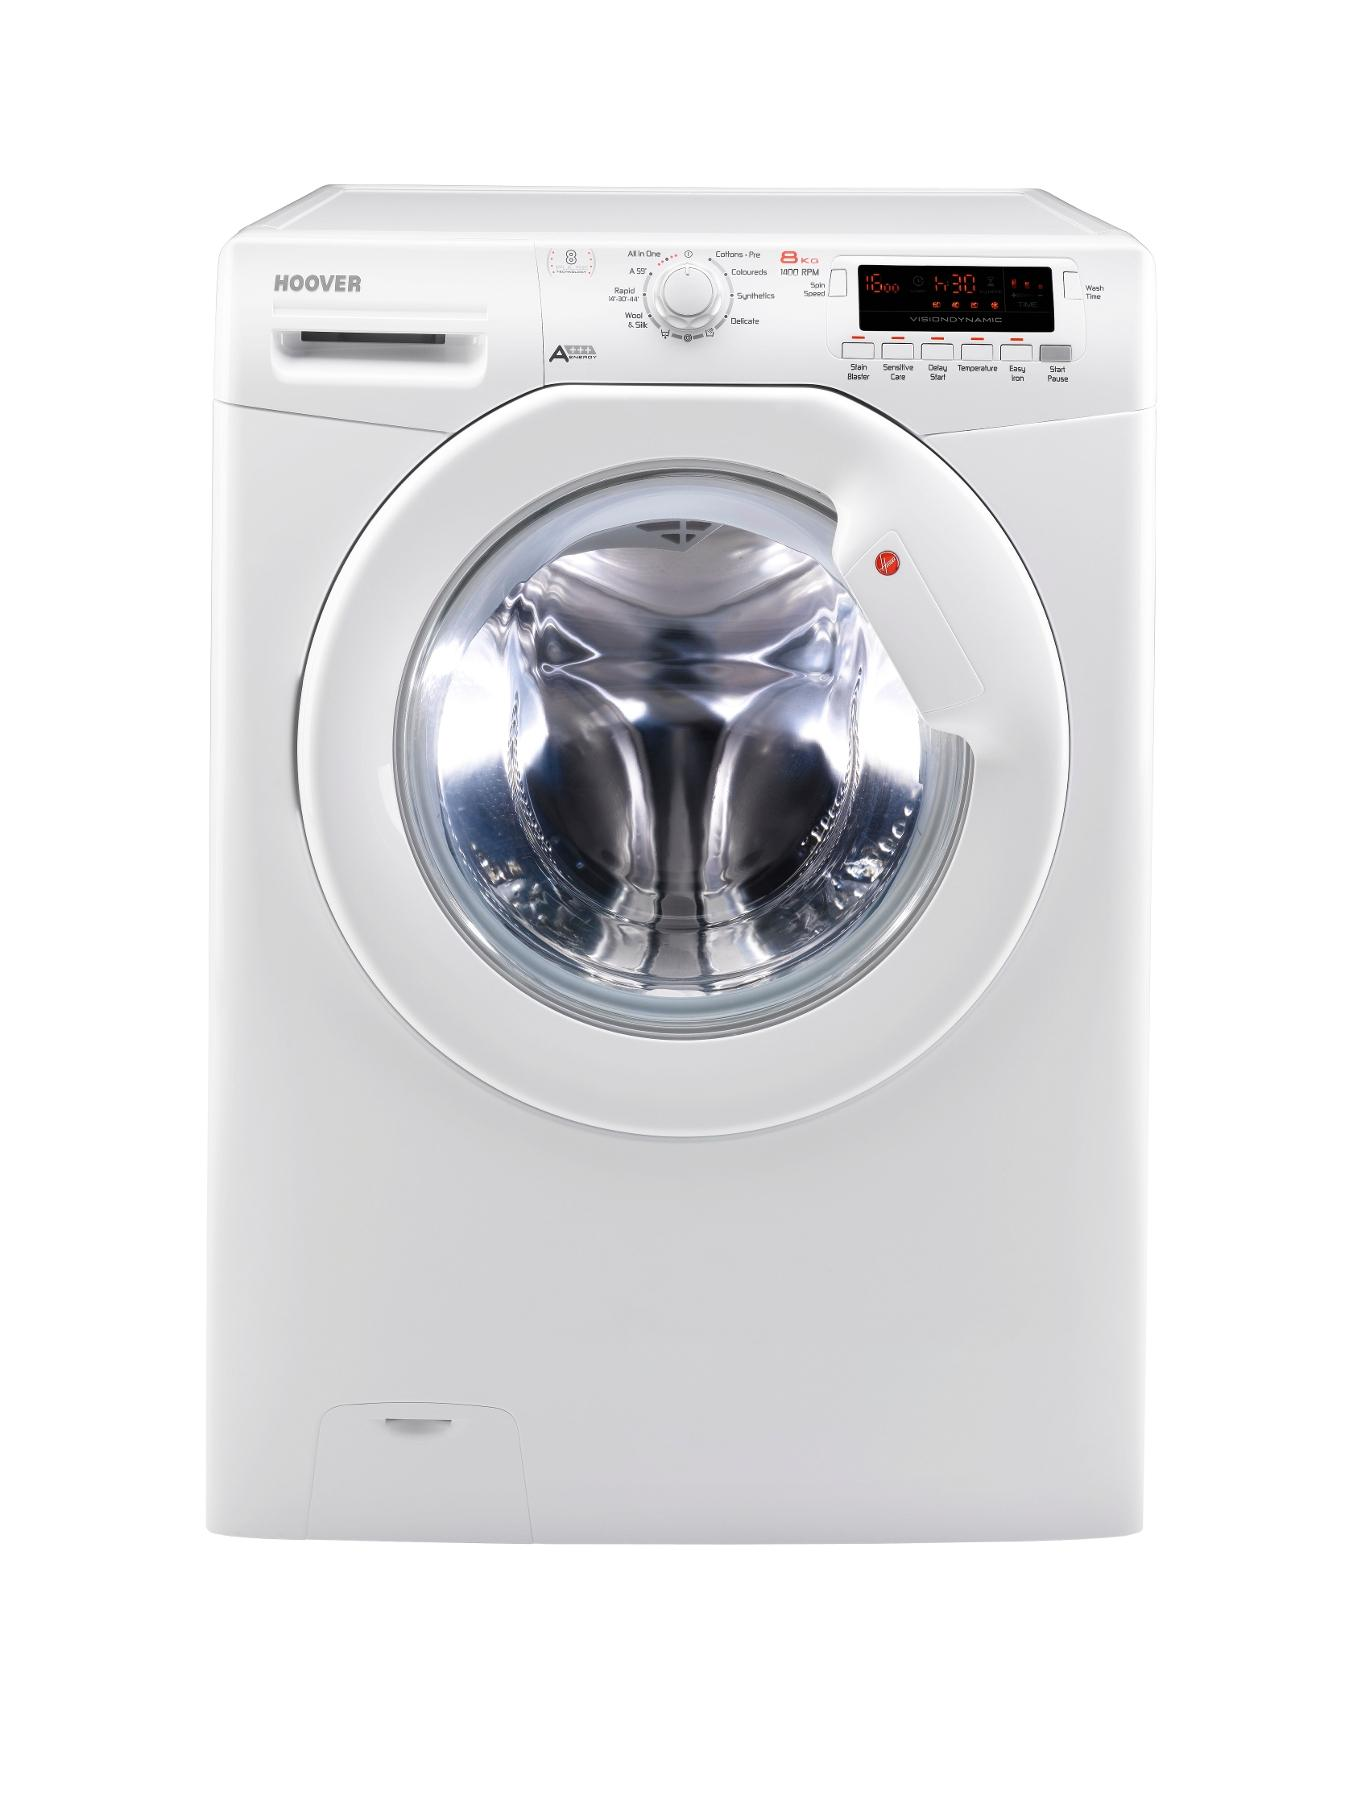 DYN8144DG8 1400 Spin, 8kg Load Washing Machine - White